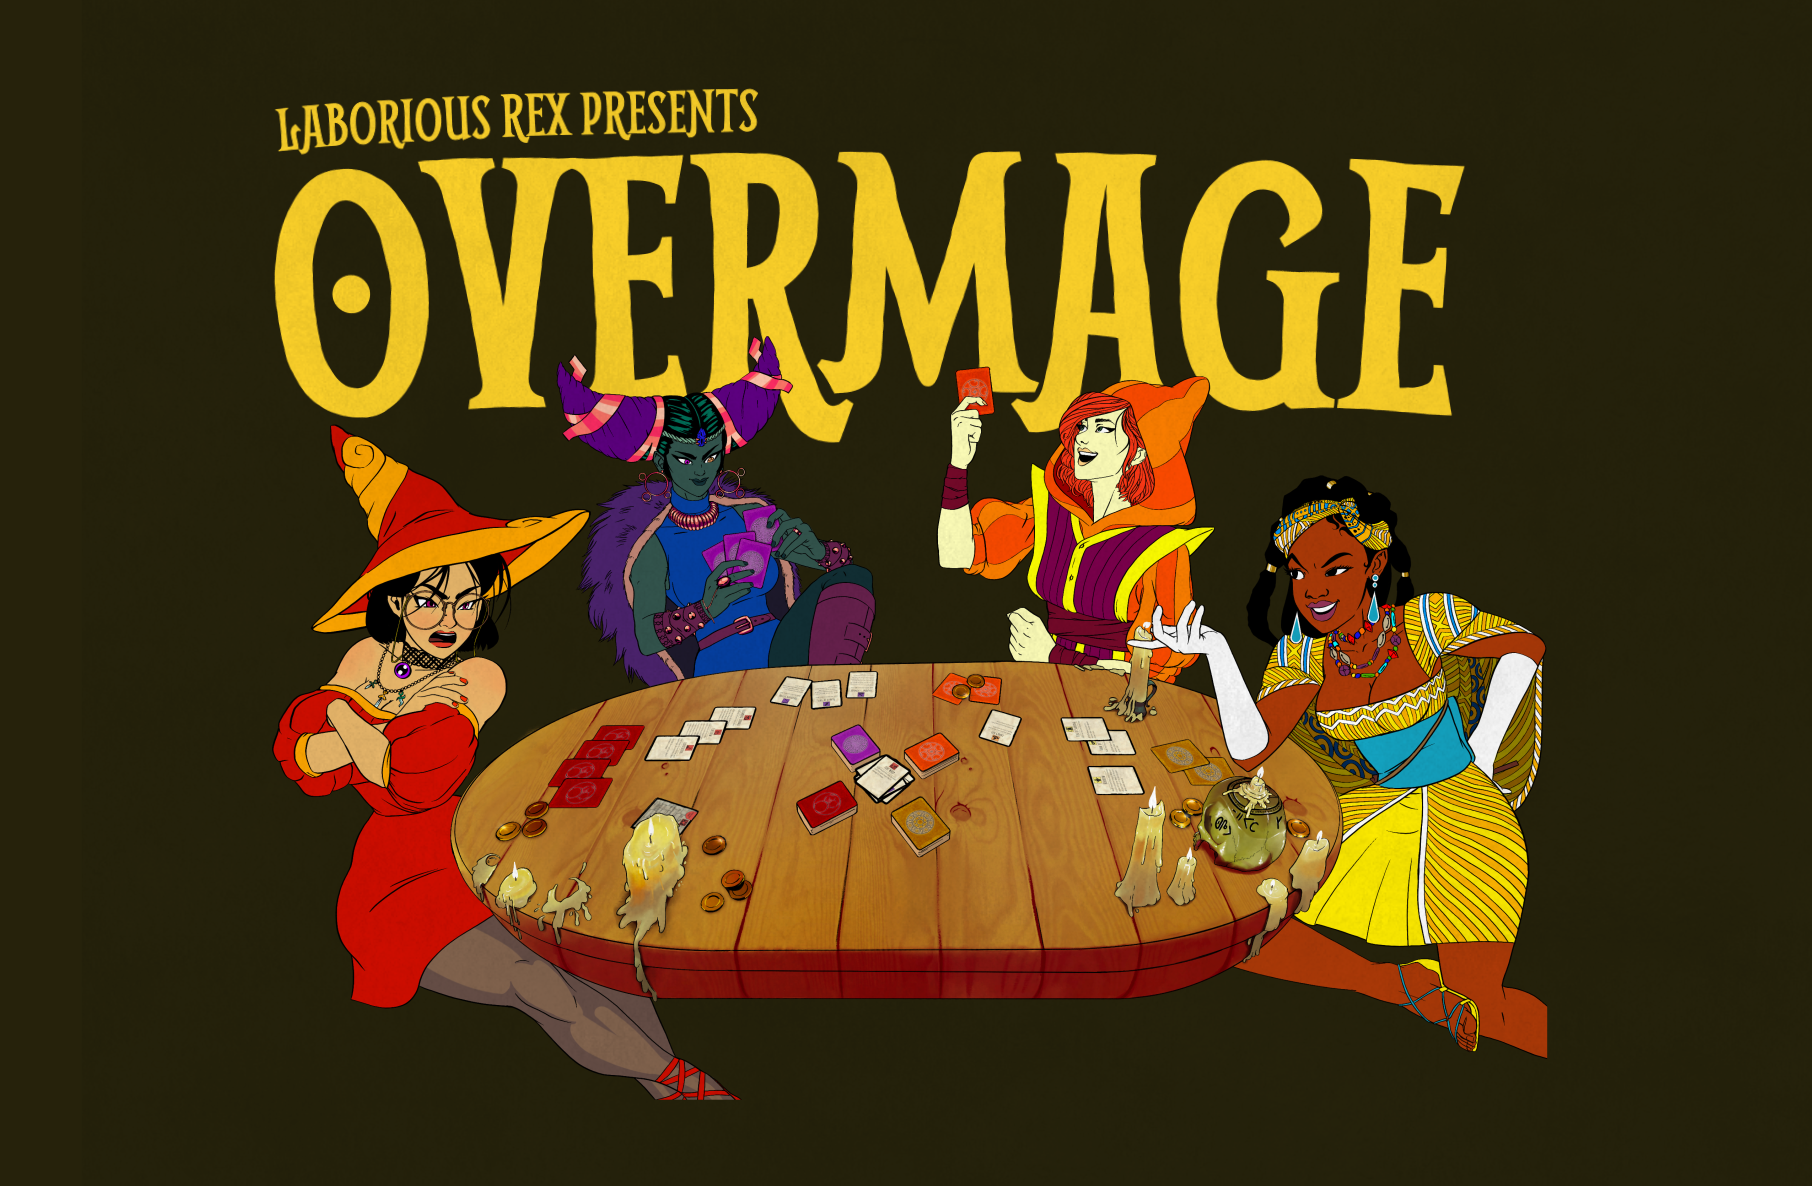 OVERMAGE